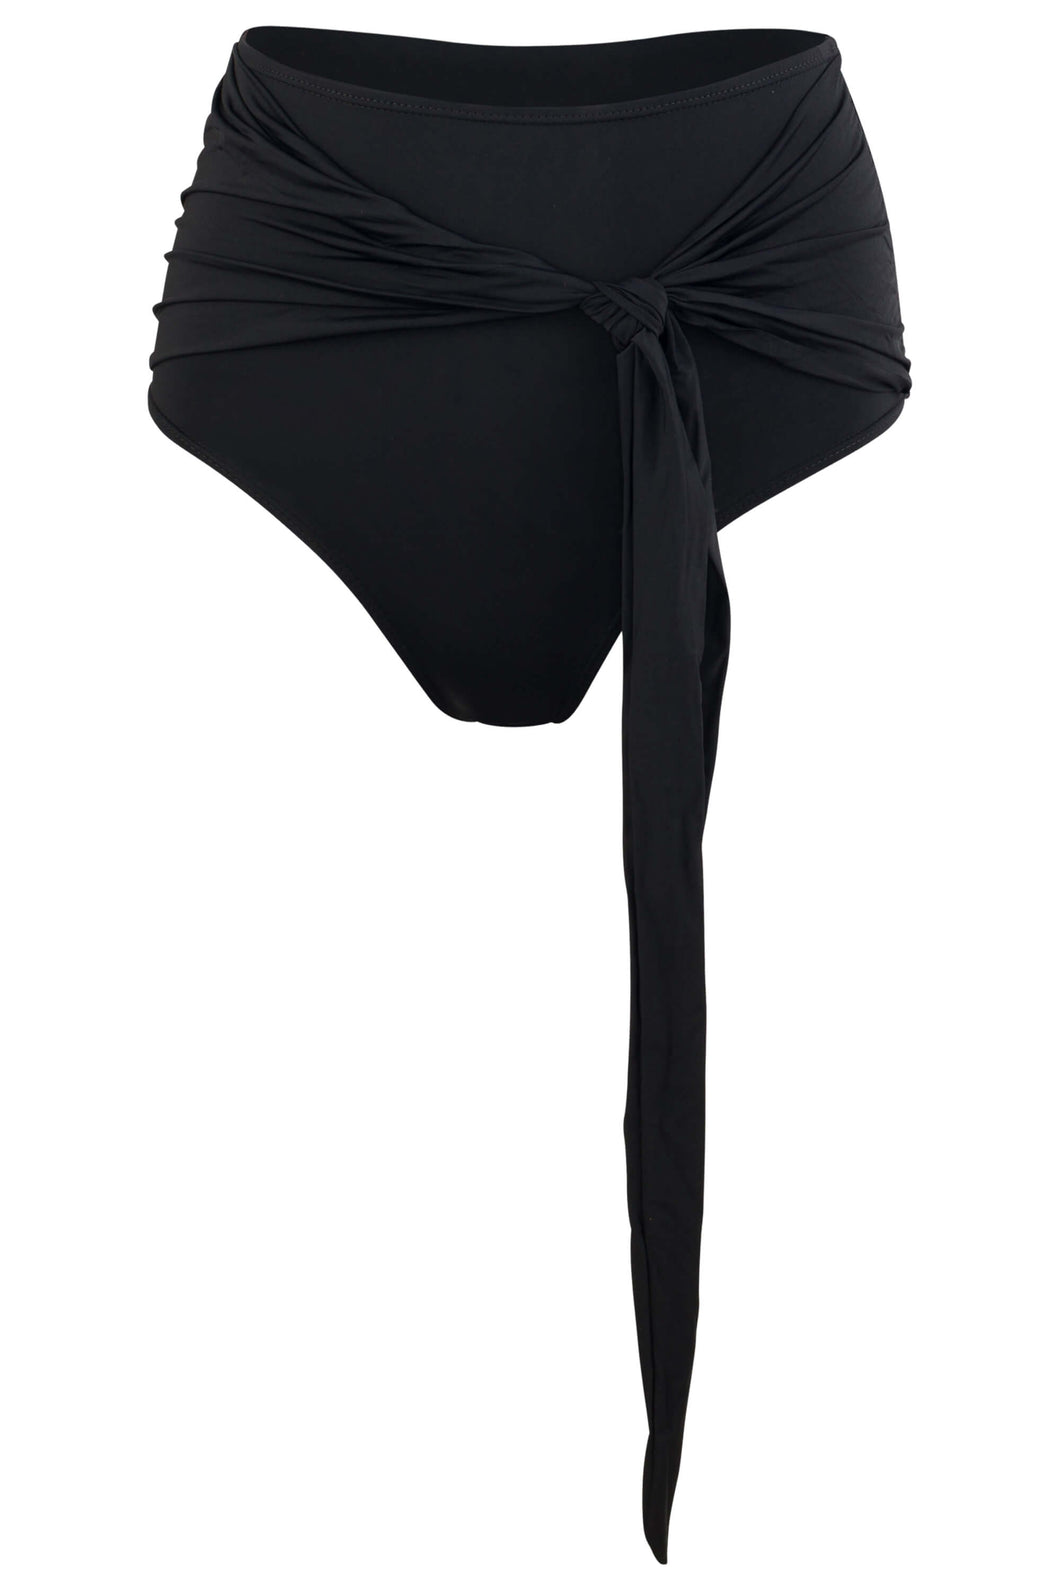 Giovanna high waisted swimsuit bottom in Black